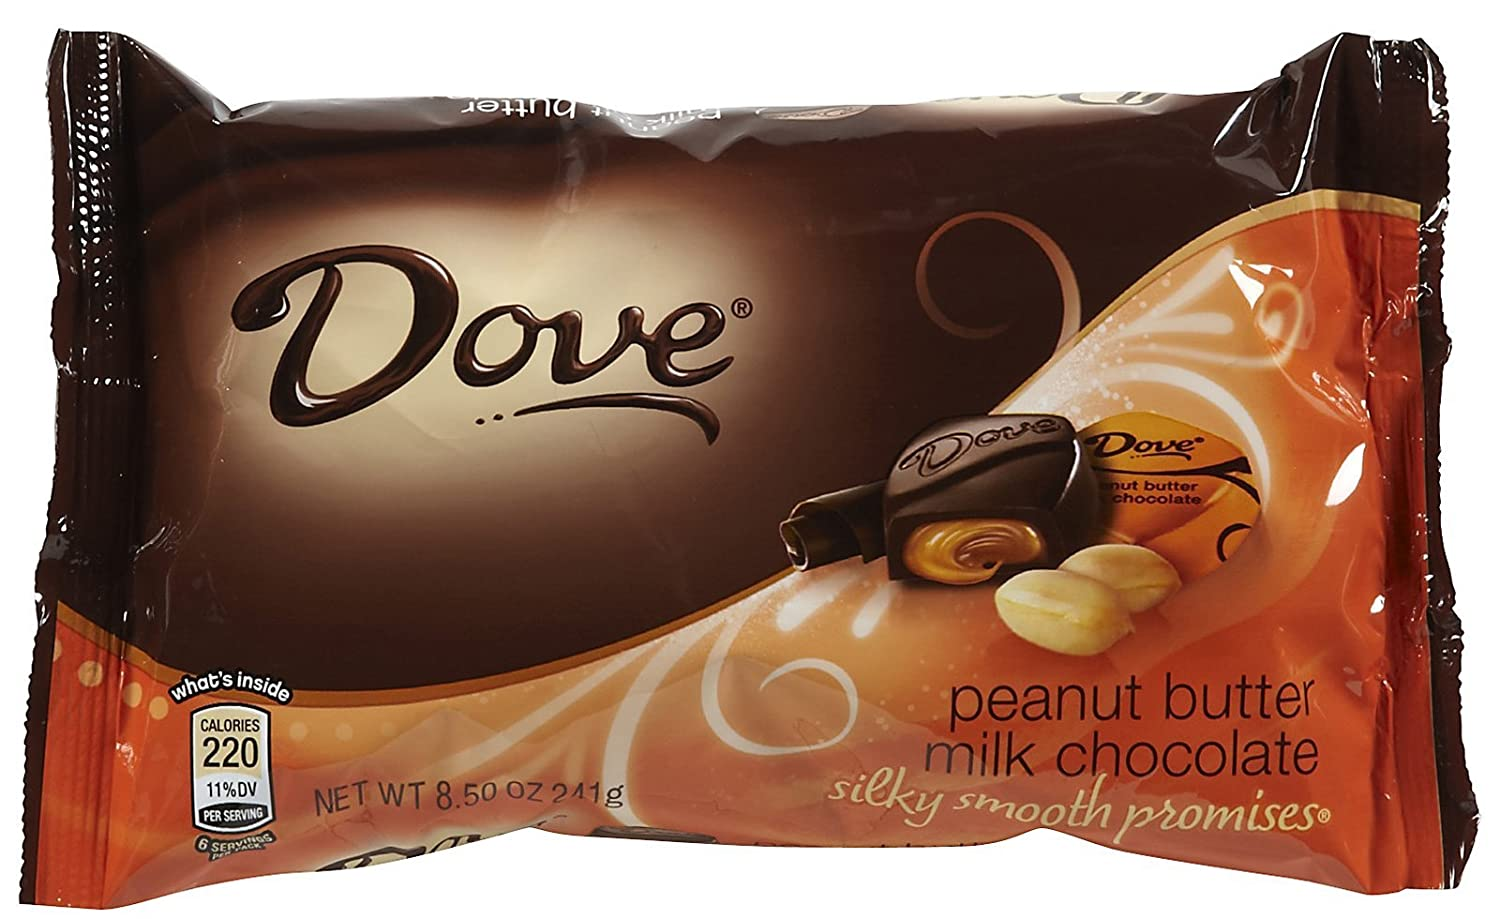 Amazon.com : Dove Chocolate Chocolate Miniatures - Peanut Butter ...